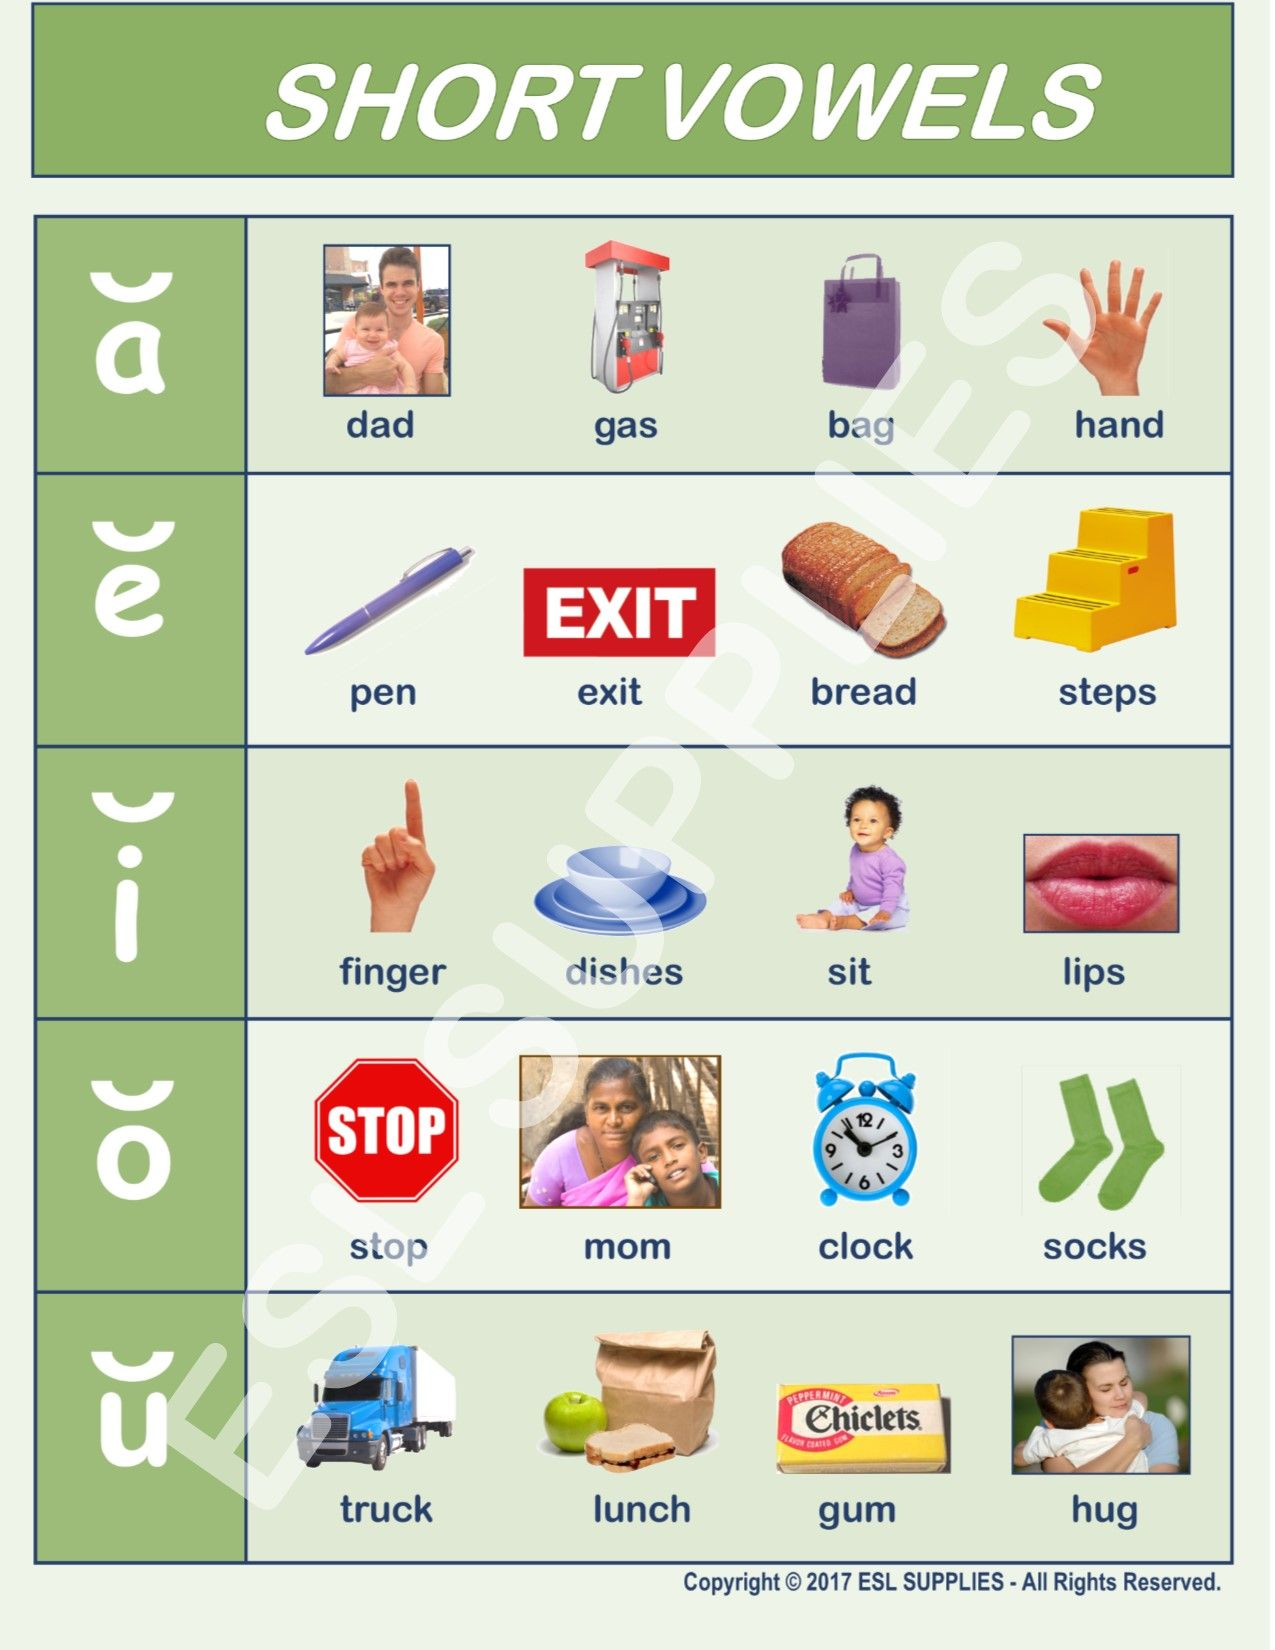 Teach All Five Short Vowels With Essential English Words